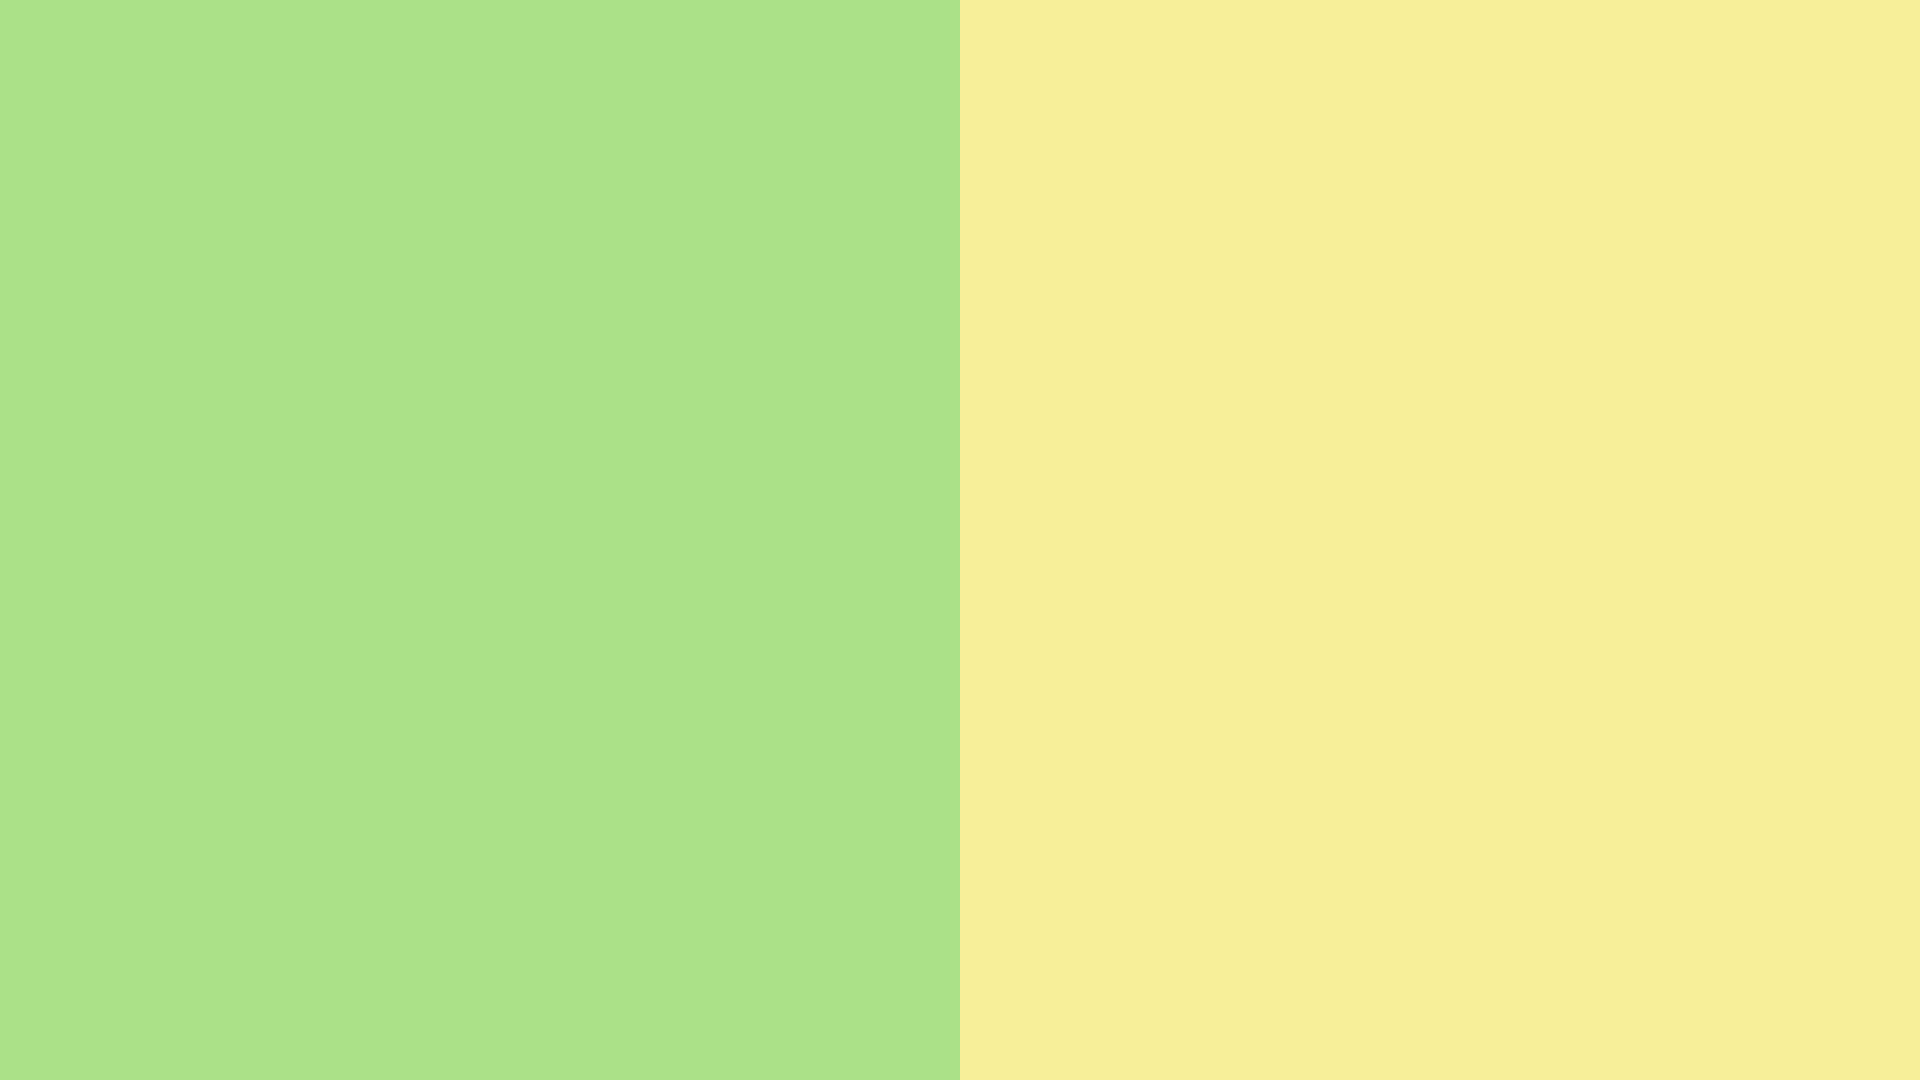 Light Green With Light Yellow Color PaletteGreen